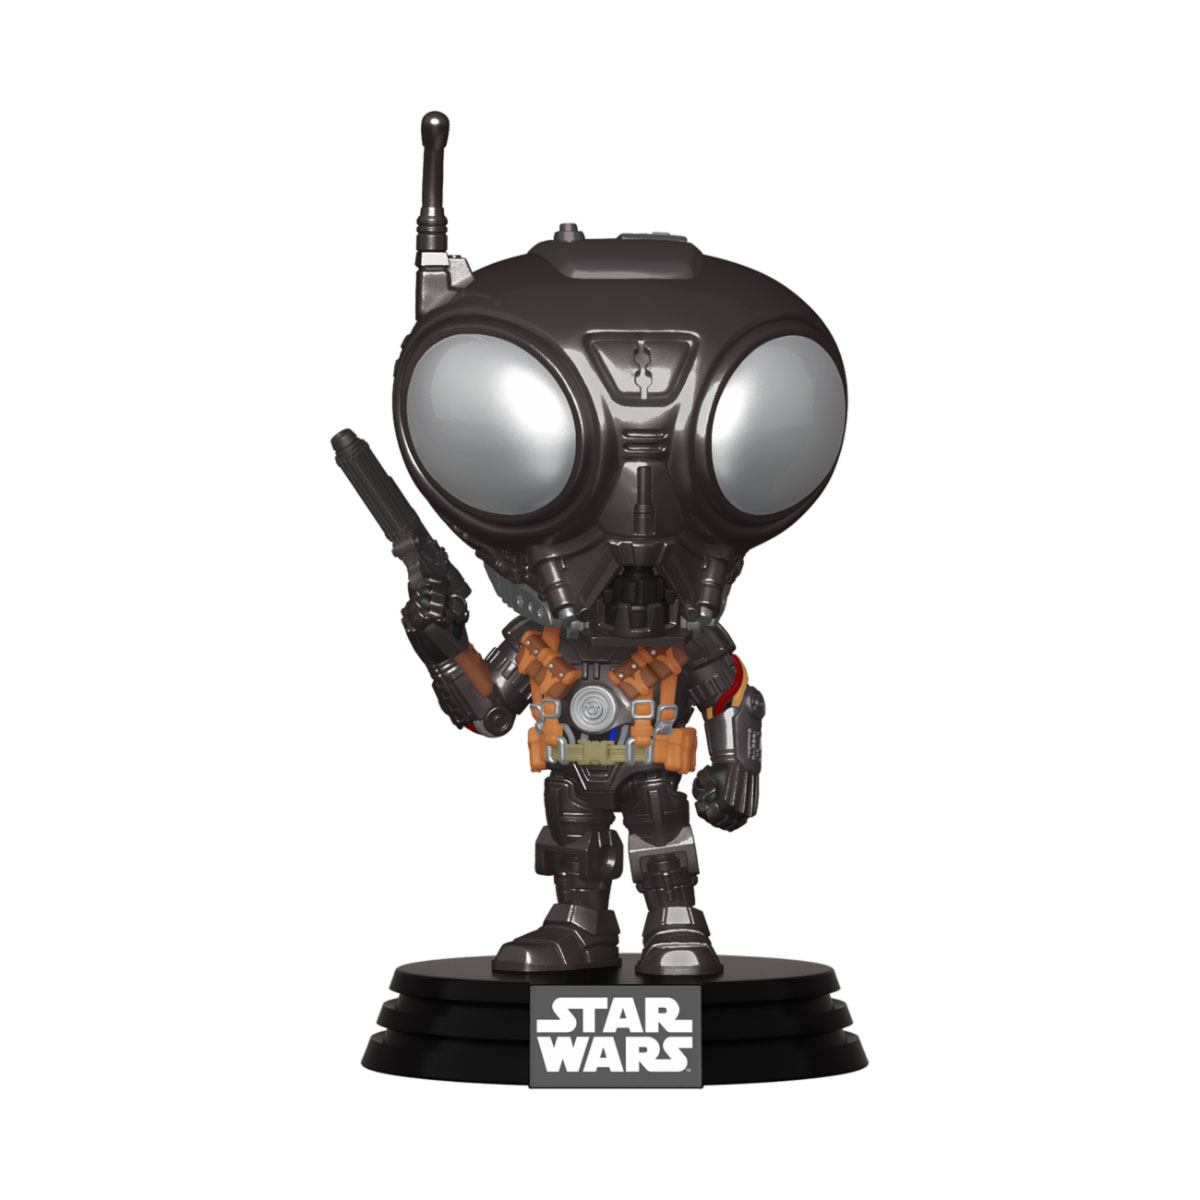 Star Wars The Mandalorian POP! TV Vinyl Figure Q9-Zero 9 cm